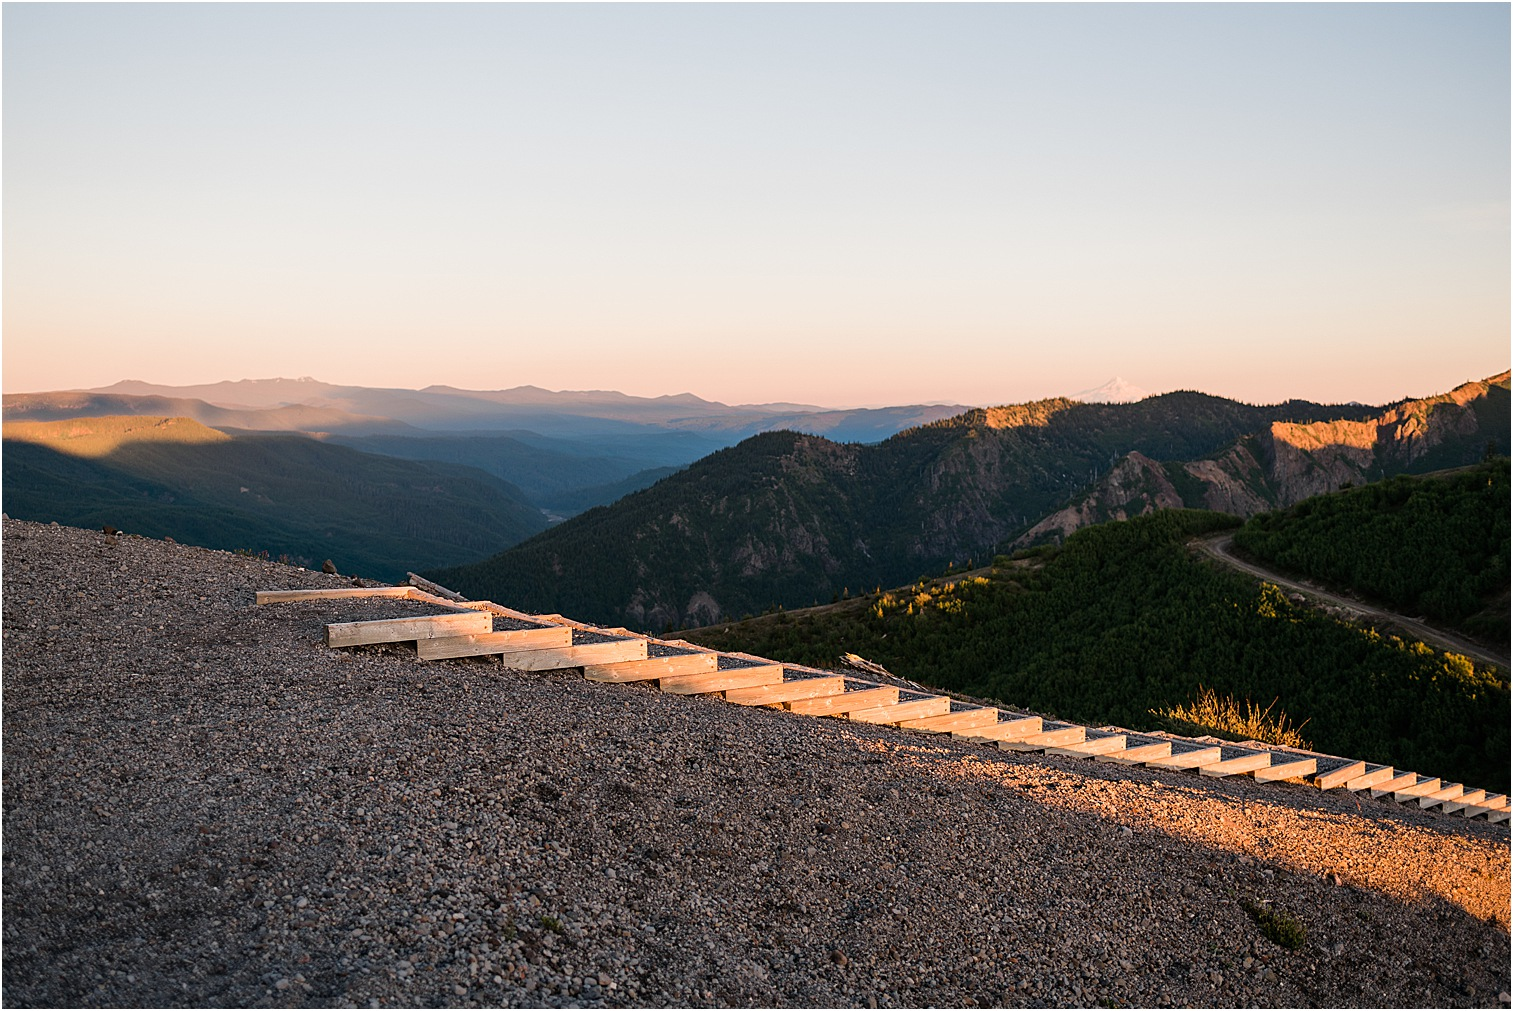 Mountain stairway at sunset. Image by Forthright Photo, wedding & elopement photographers.